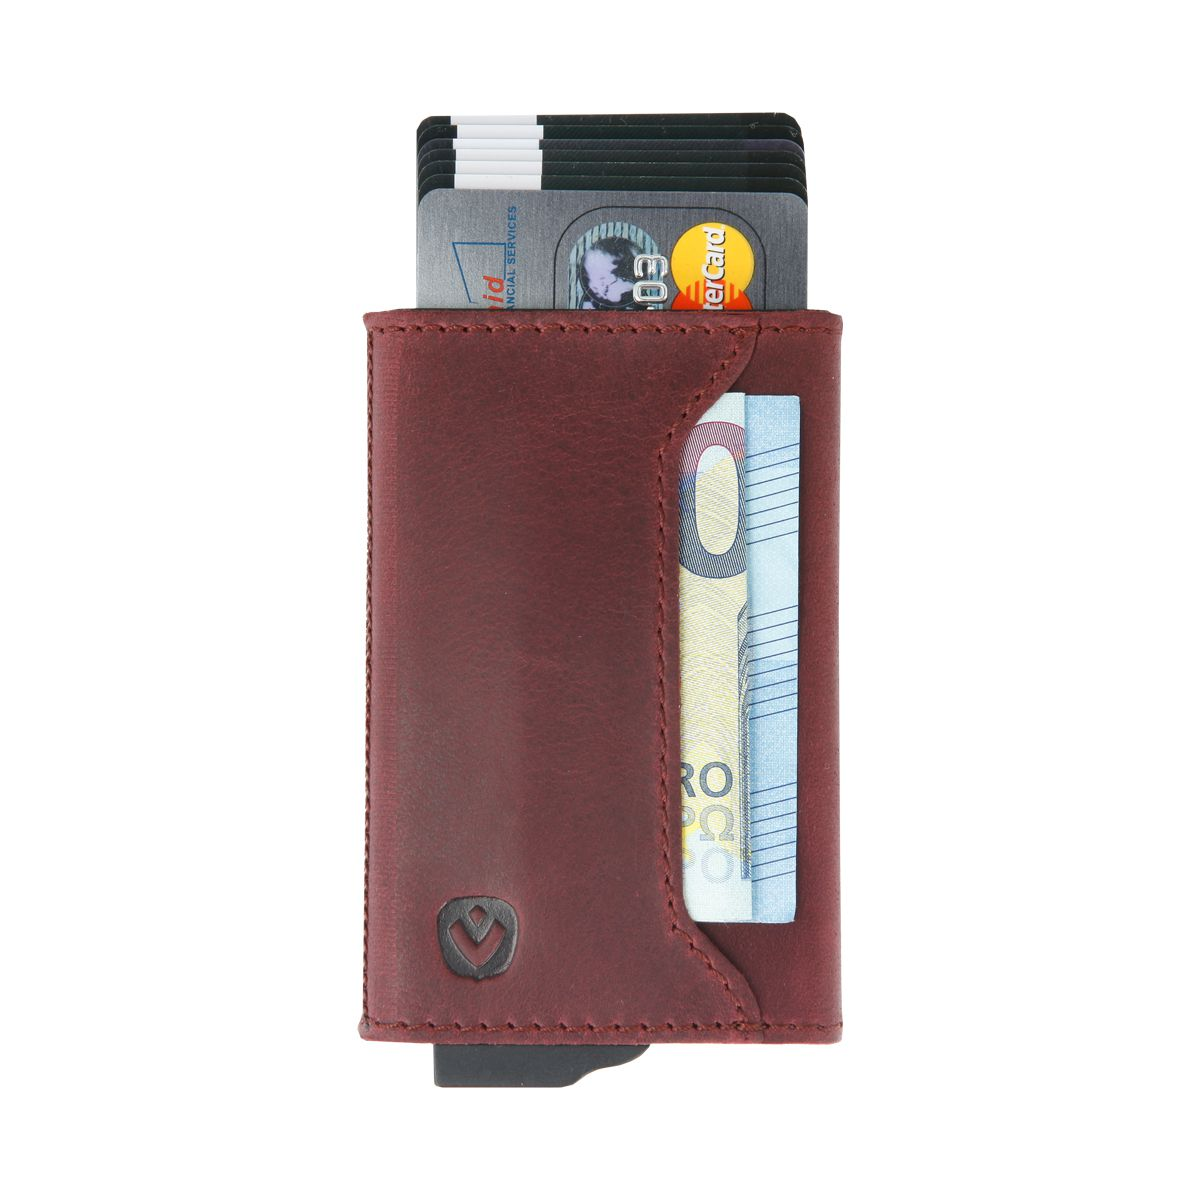 gift set leather with card holder and key organizer burgundy